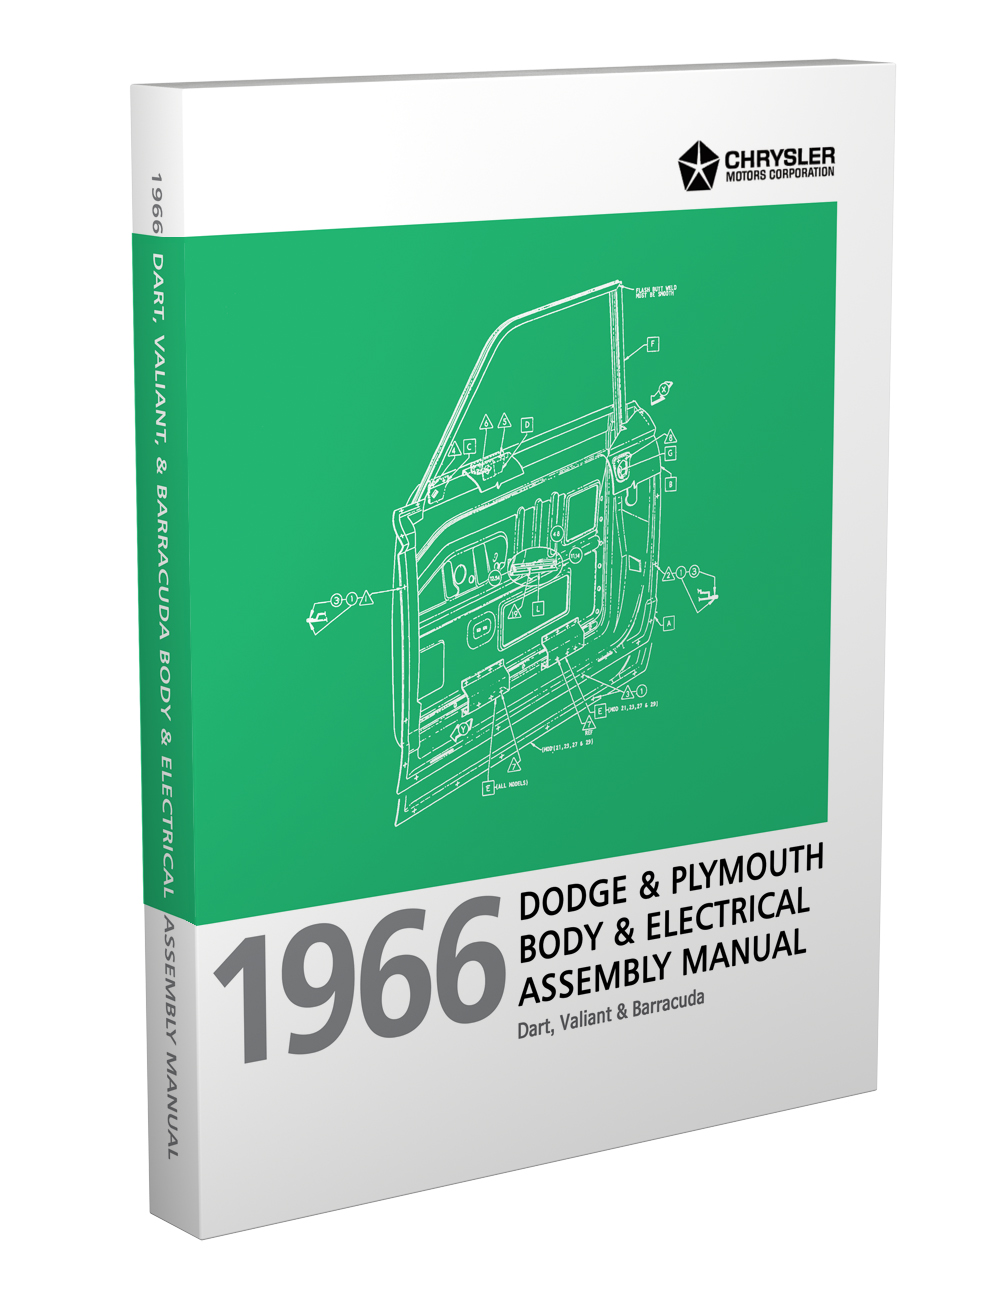 hight resolution of 1966 barracuda valiant and dart electrical and body assembly manual reprint